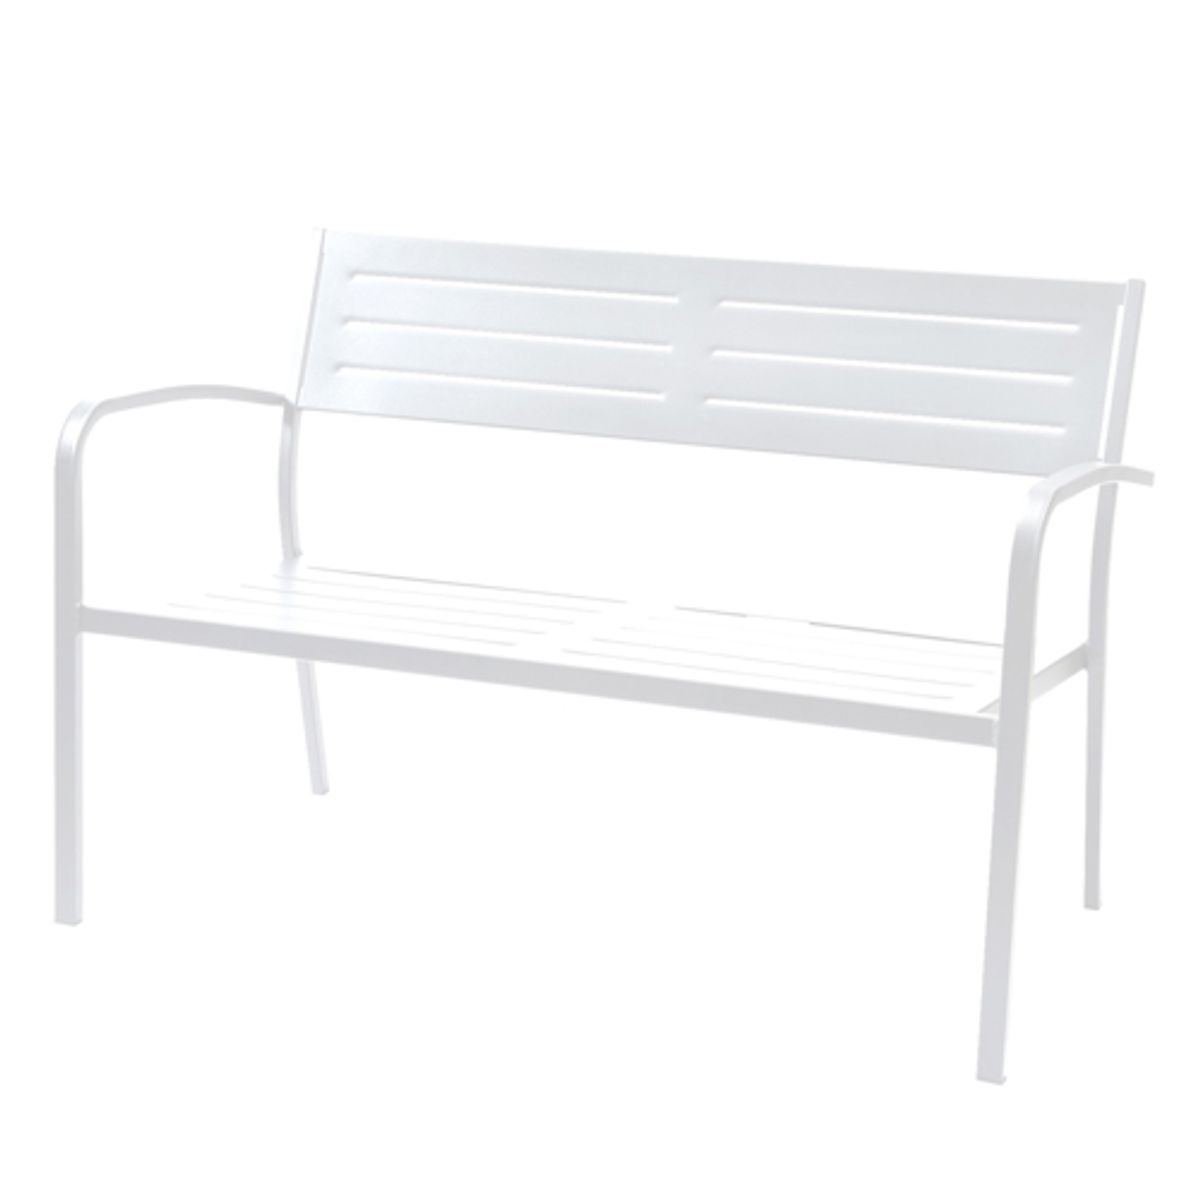 banc de jardin plastique blanc table de jardin plastique super u banc de jardin en bois style. Black Bedroom Furniture Sets. Home Design Ideas